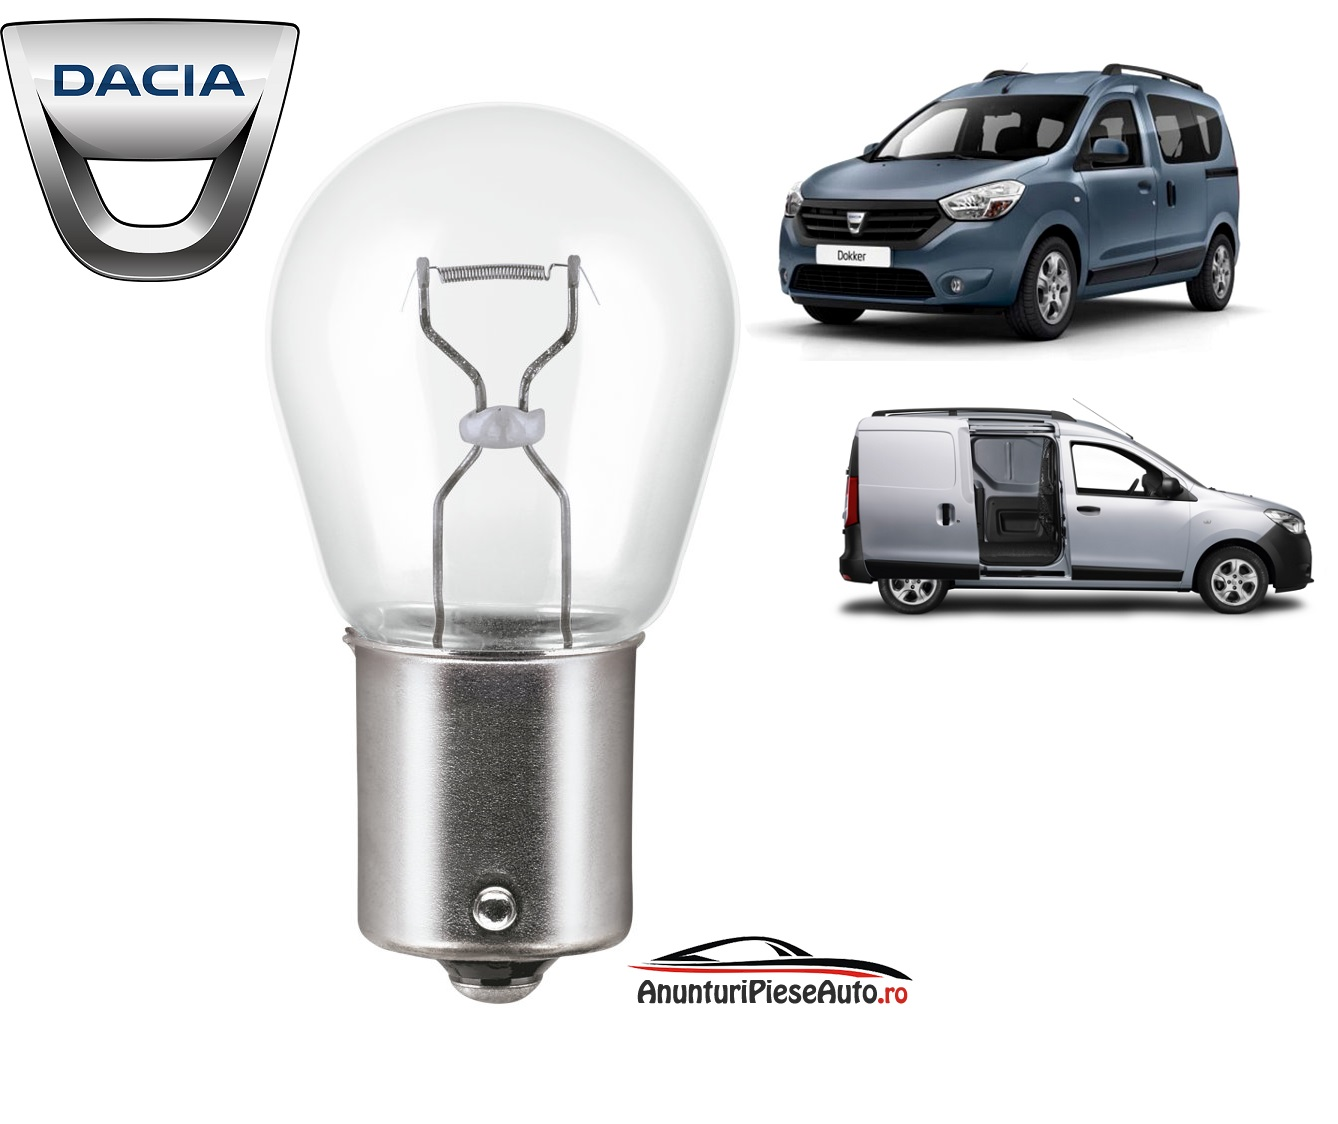 Model bec mers inapoi Dacia Dokker